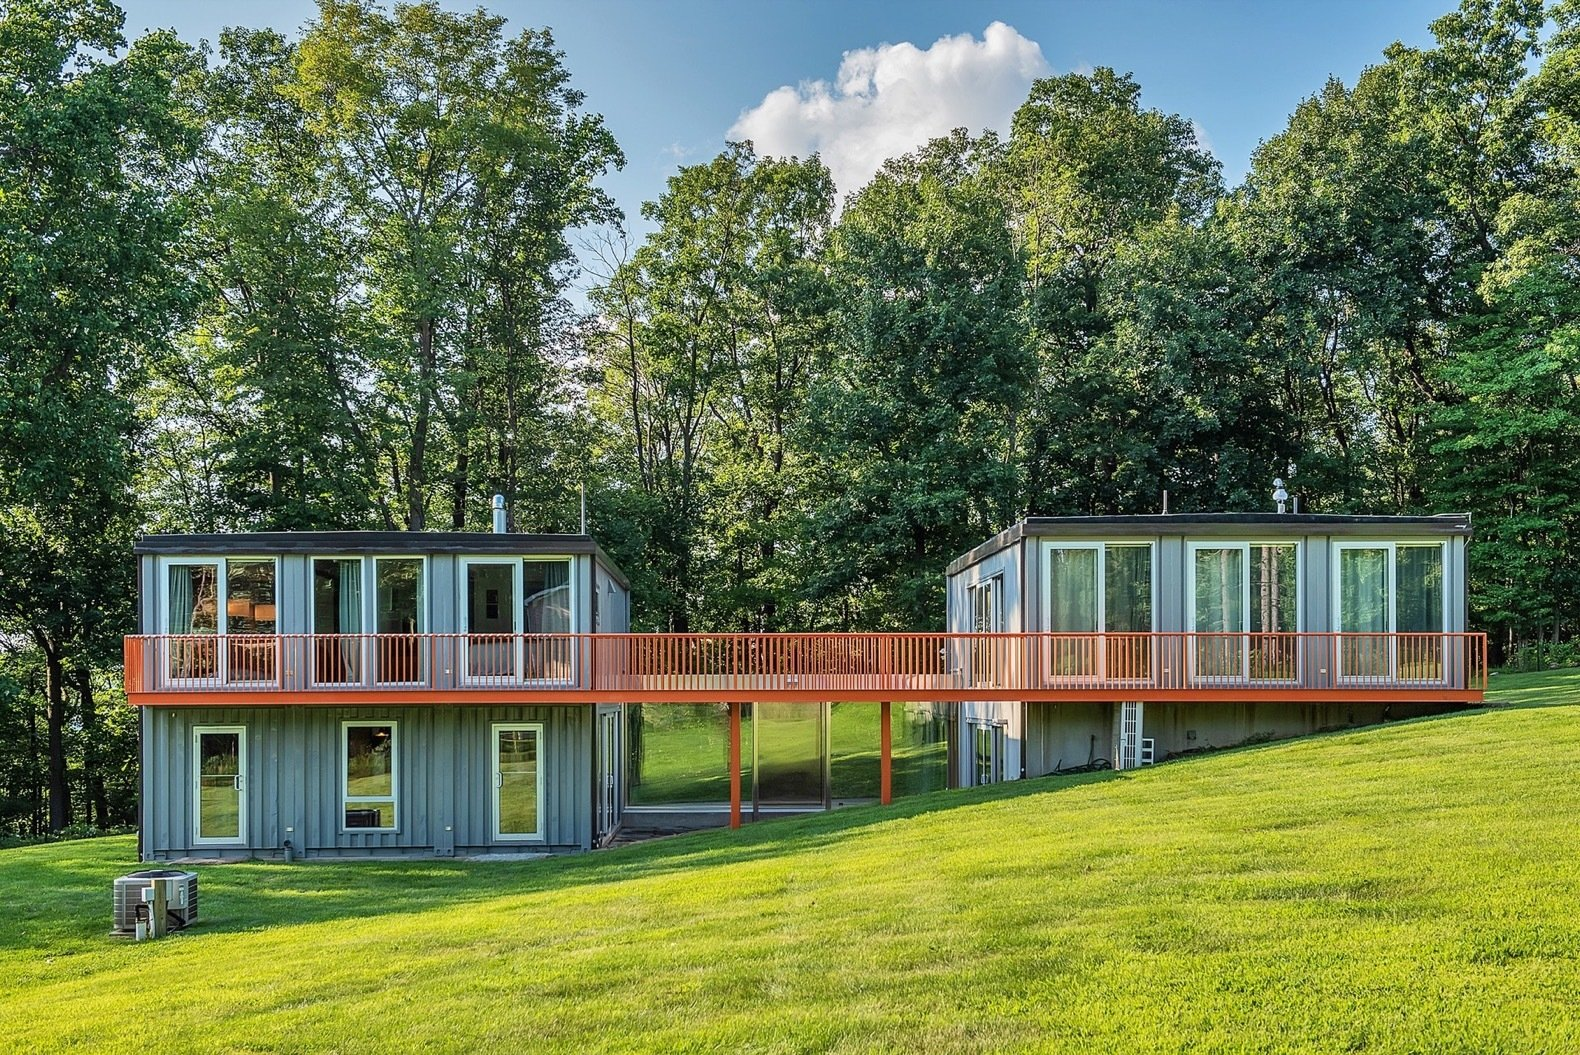 Grab This Dreamy Shipping Container Home For $875K